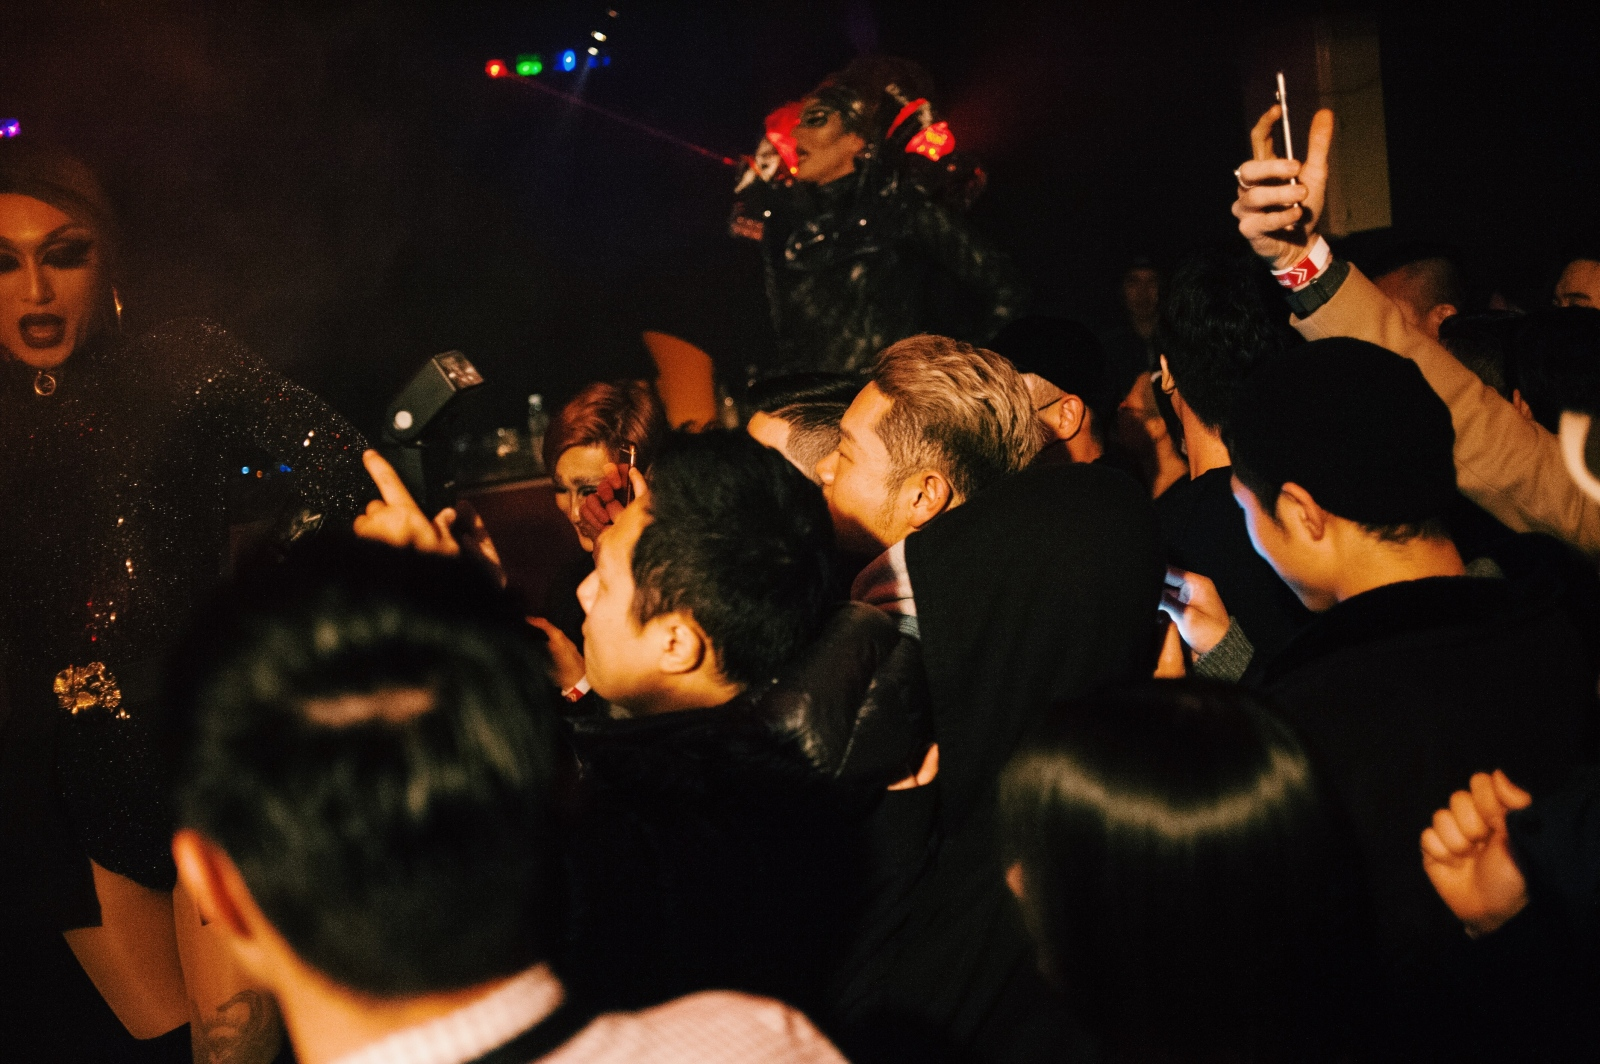 The crowd at a drag show featuring Kuciia and Charlotte Goodenough at Club Trunk, Itaewon, as a part of a fundraising party toward HIV/AIDS awareness.